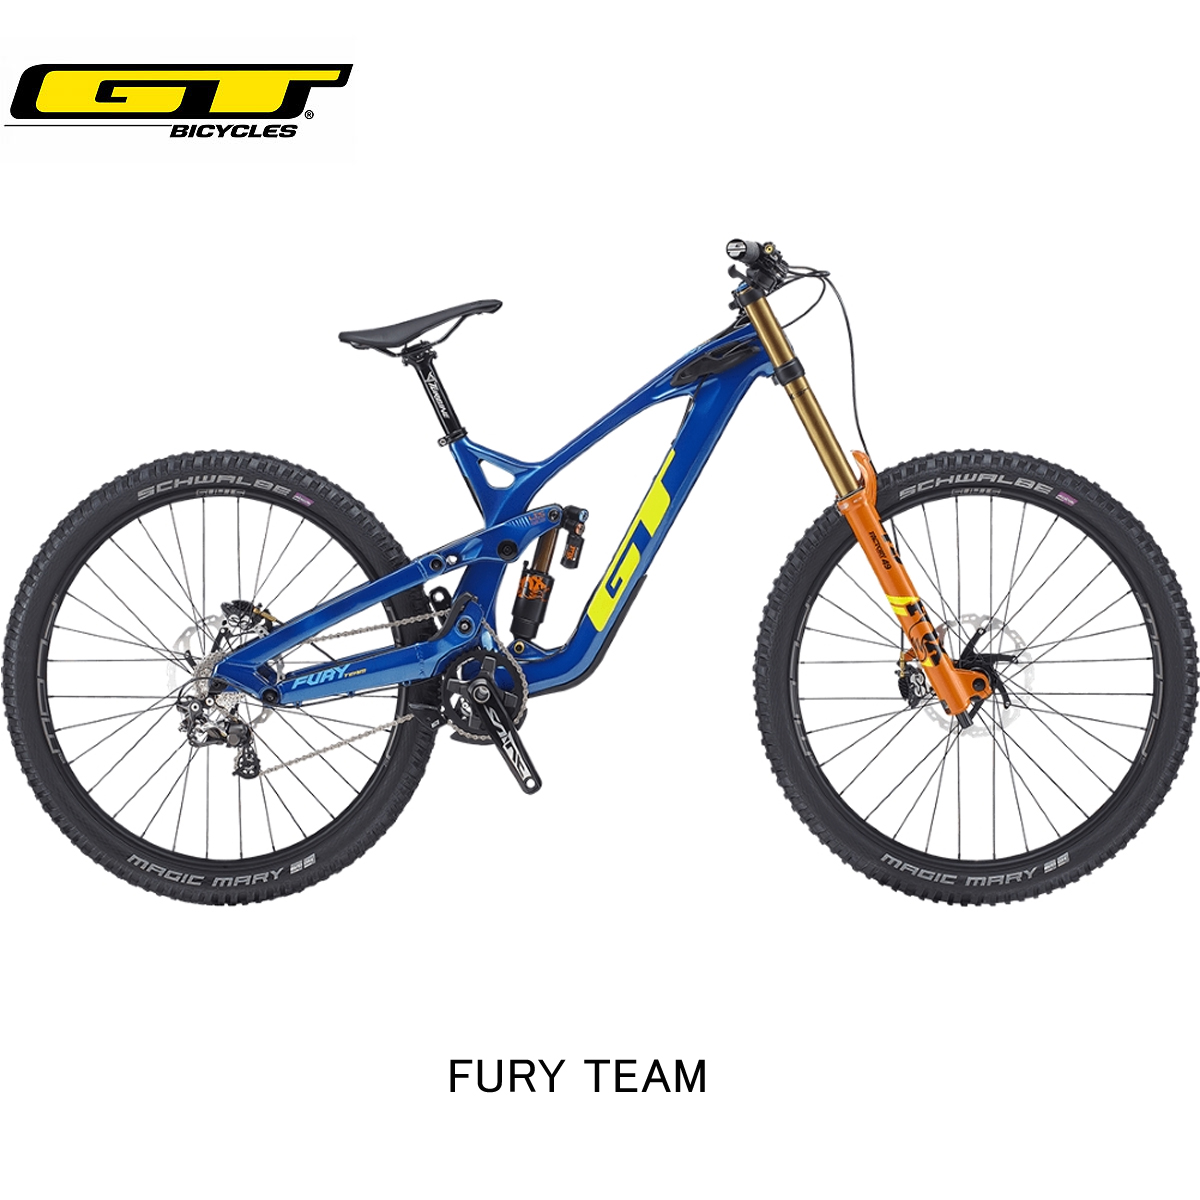 GT フューリーチーム 2020 FURY TEAM[S-STAGE]